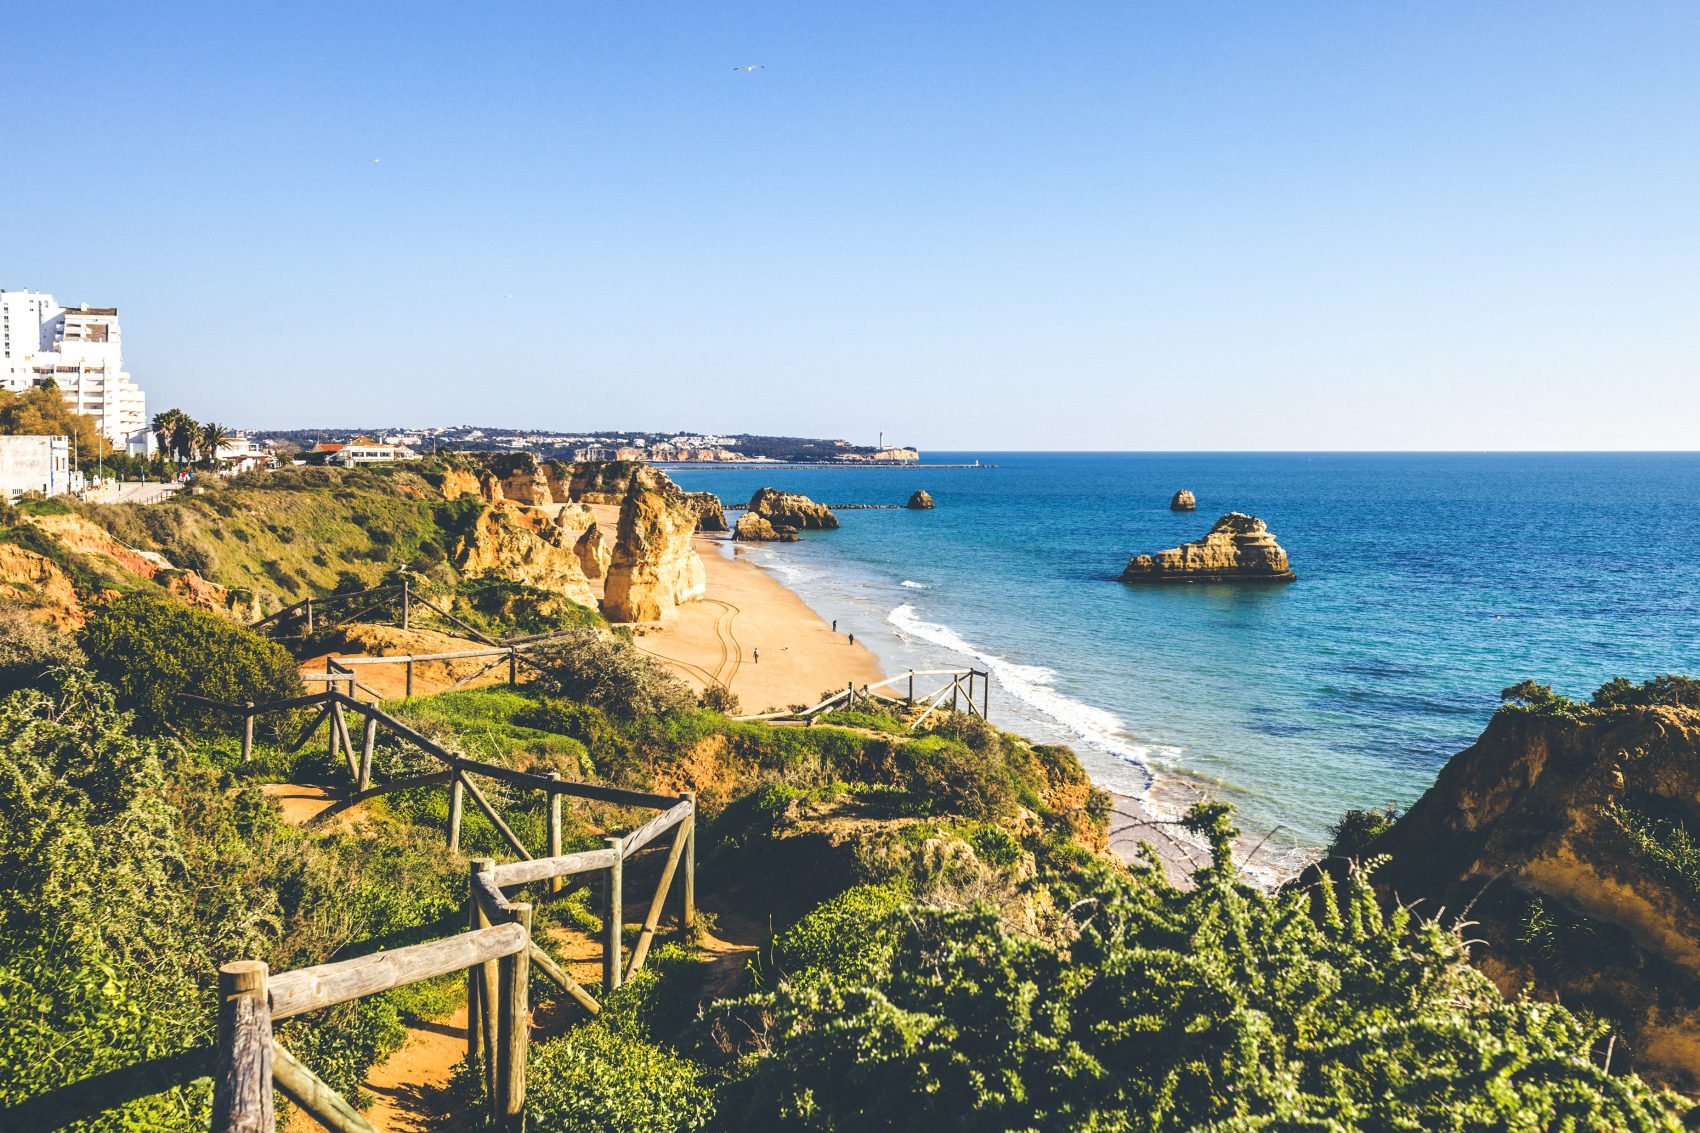 Algarve beaches, Portugal